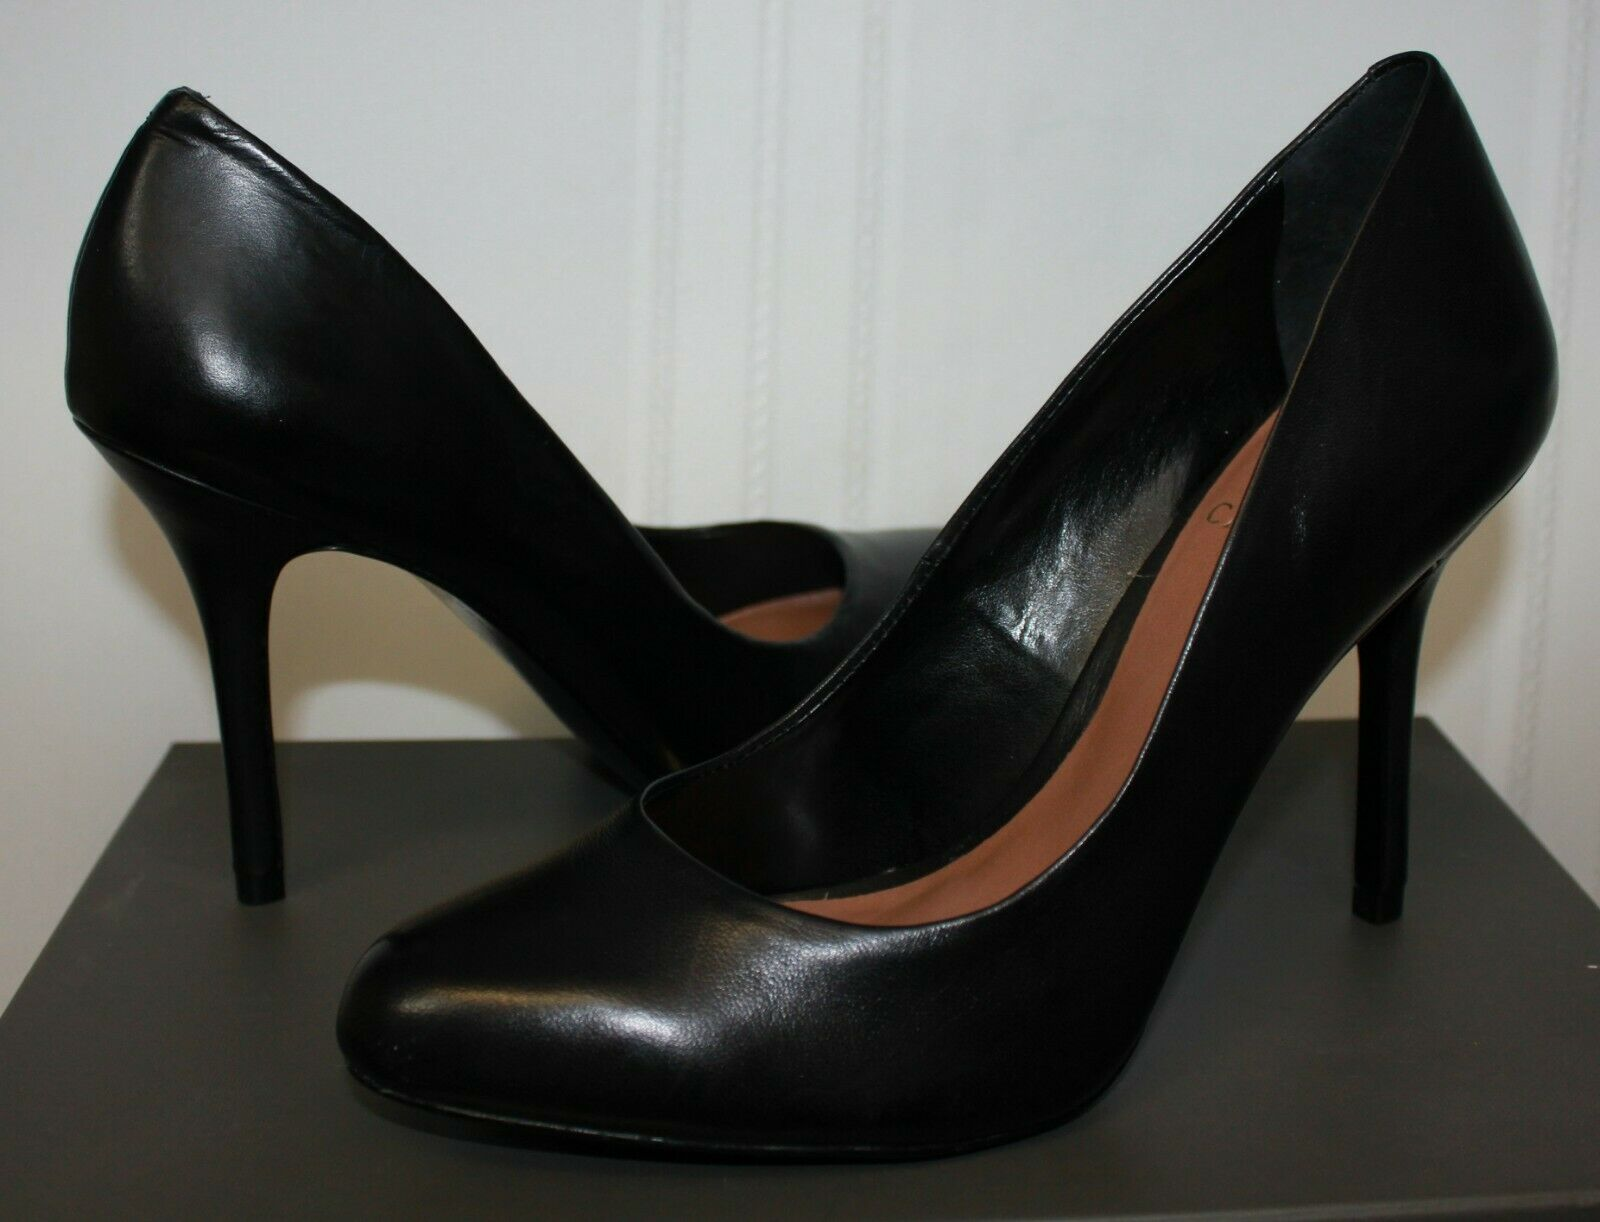 Vince Camuto Jayne Heels Black Leather Pumps New With Box